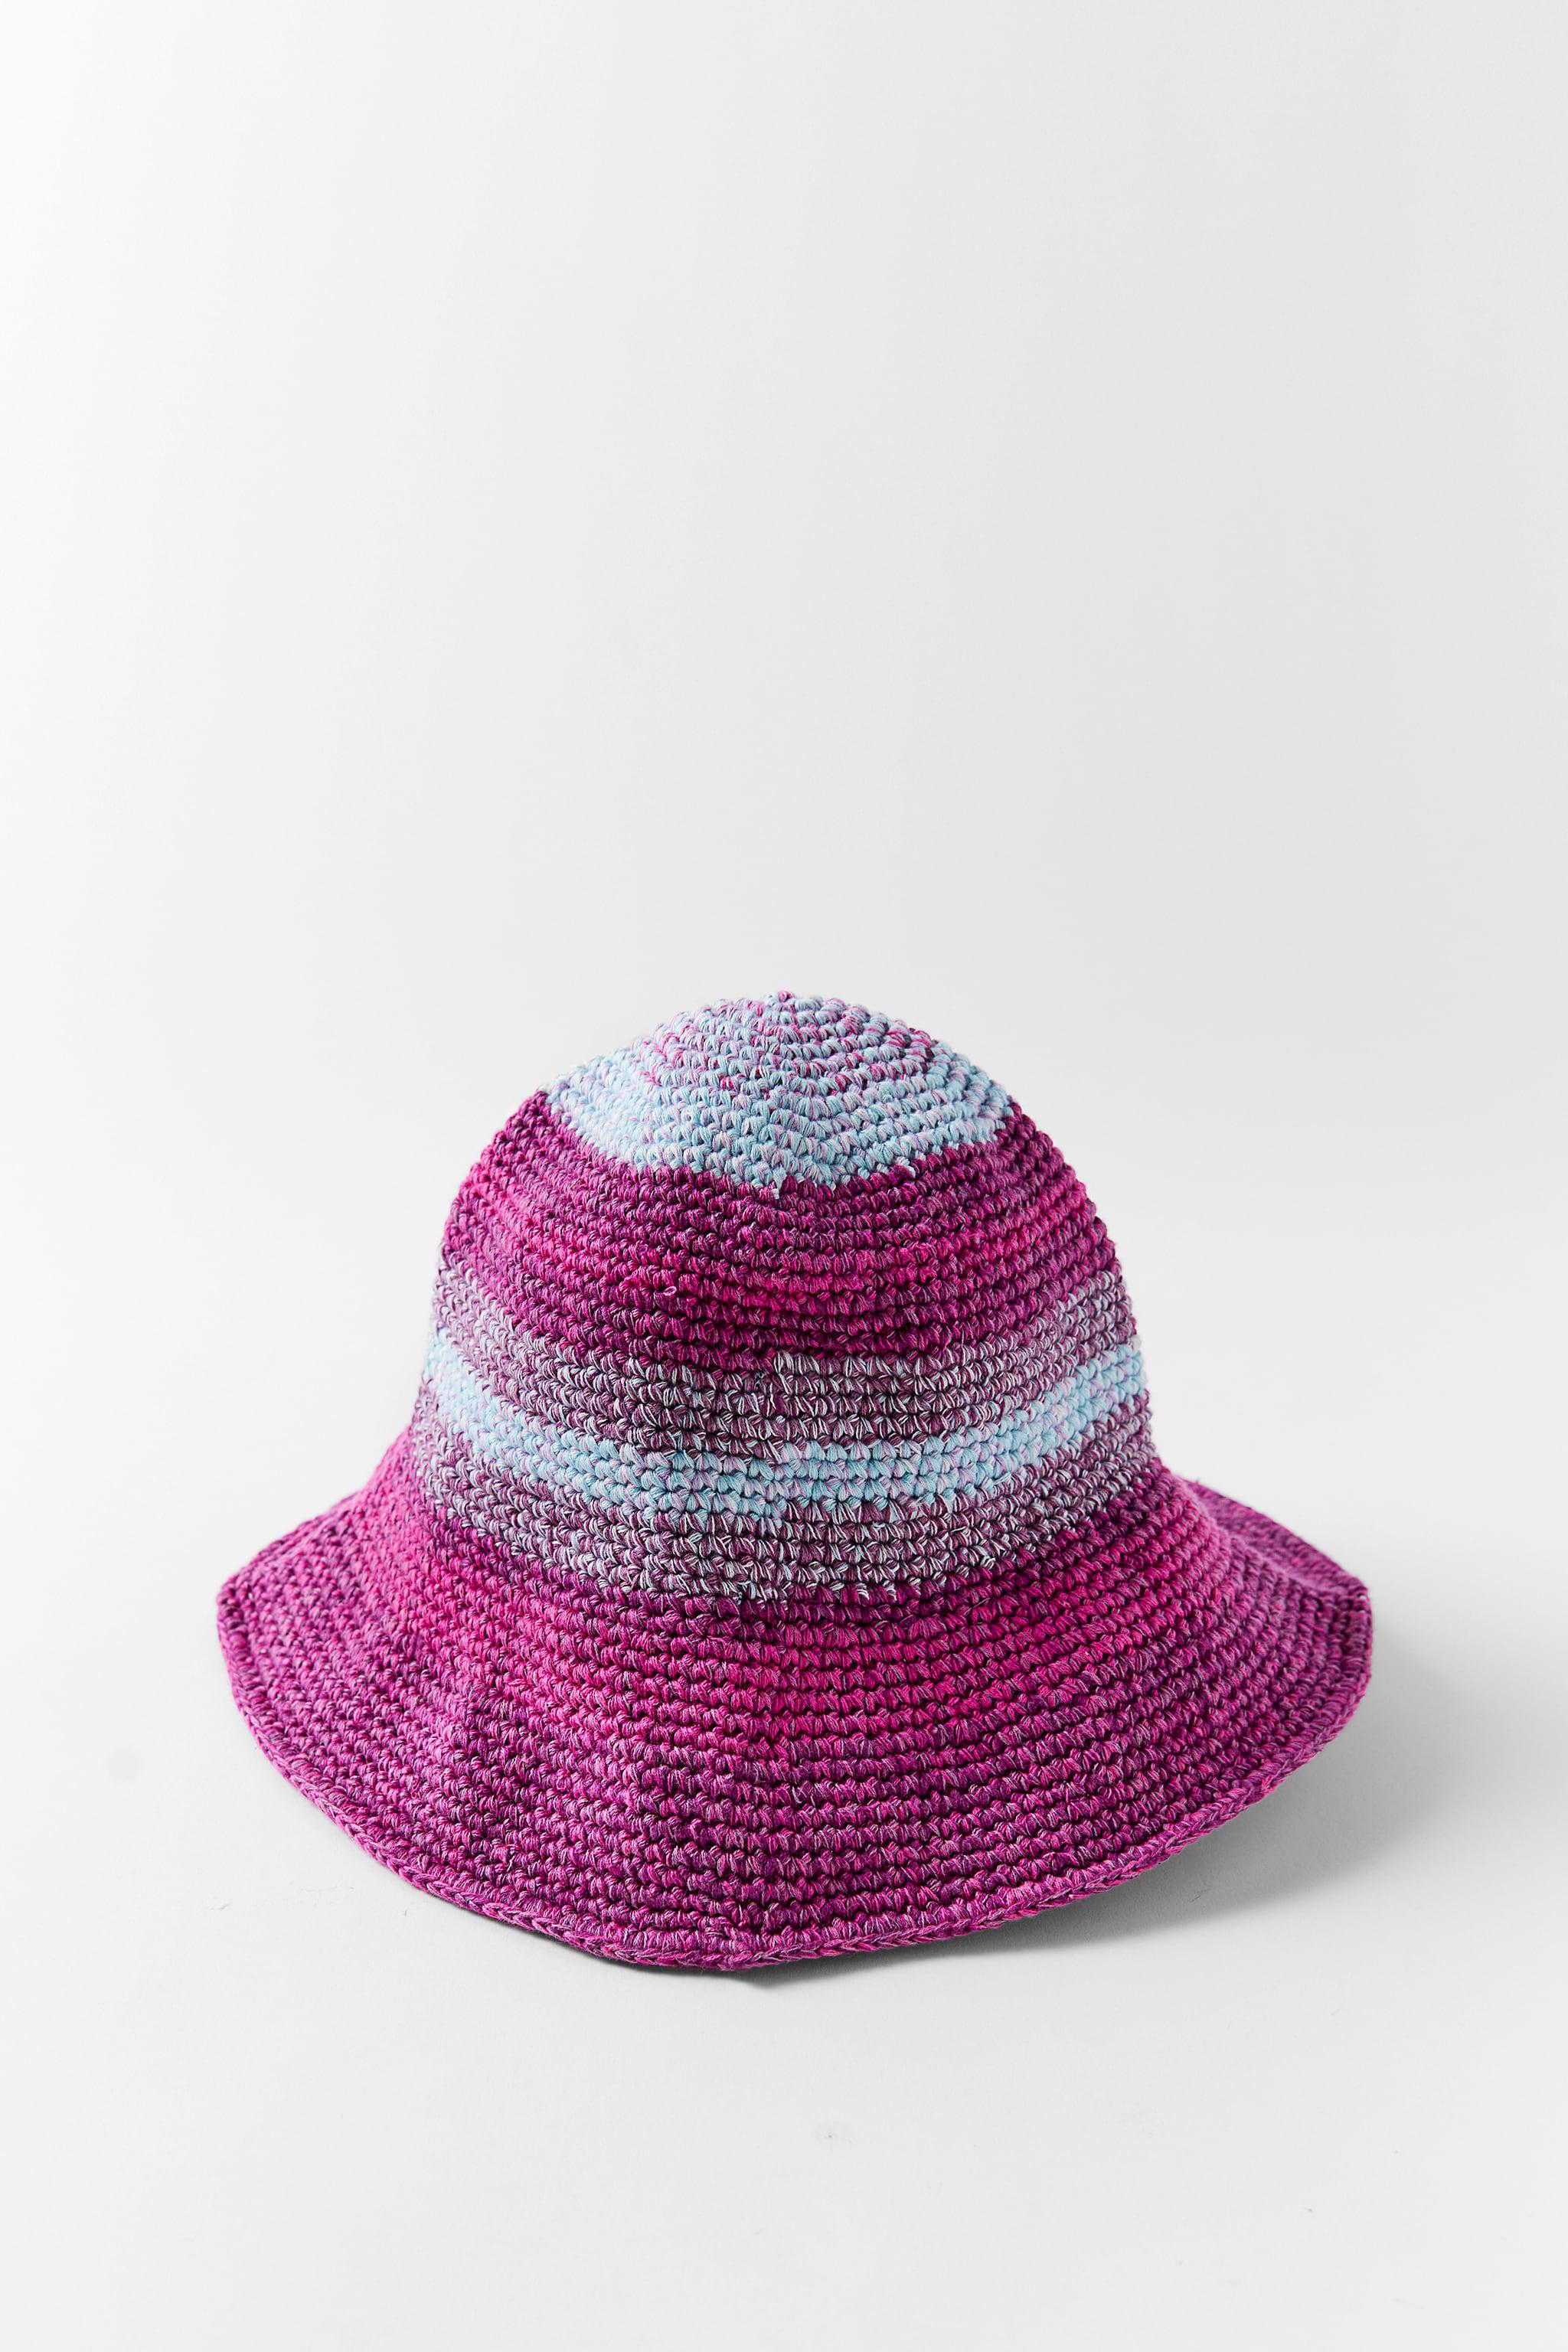 MULTICOLORED CROCHETED HAT 0